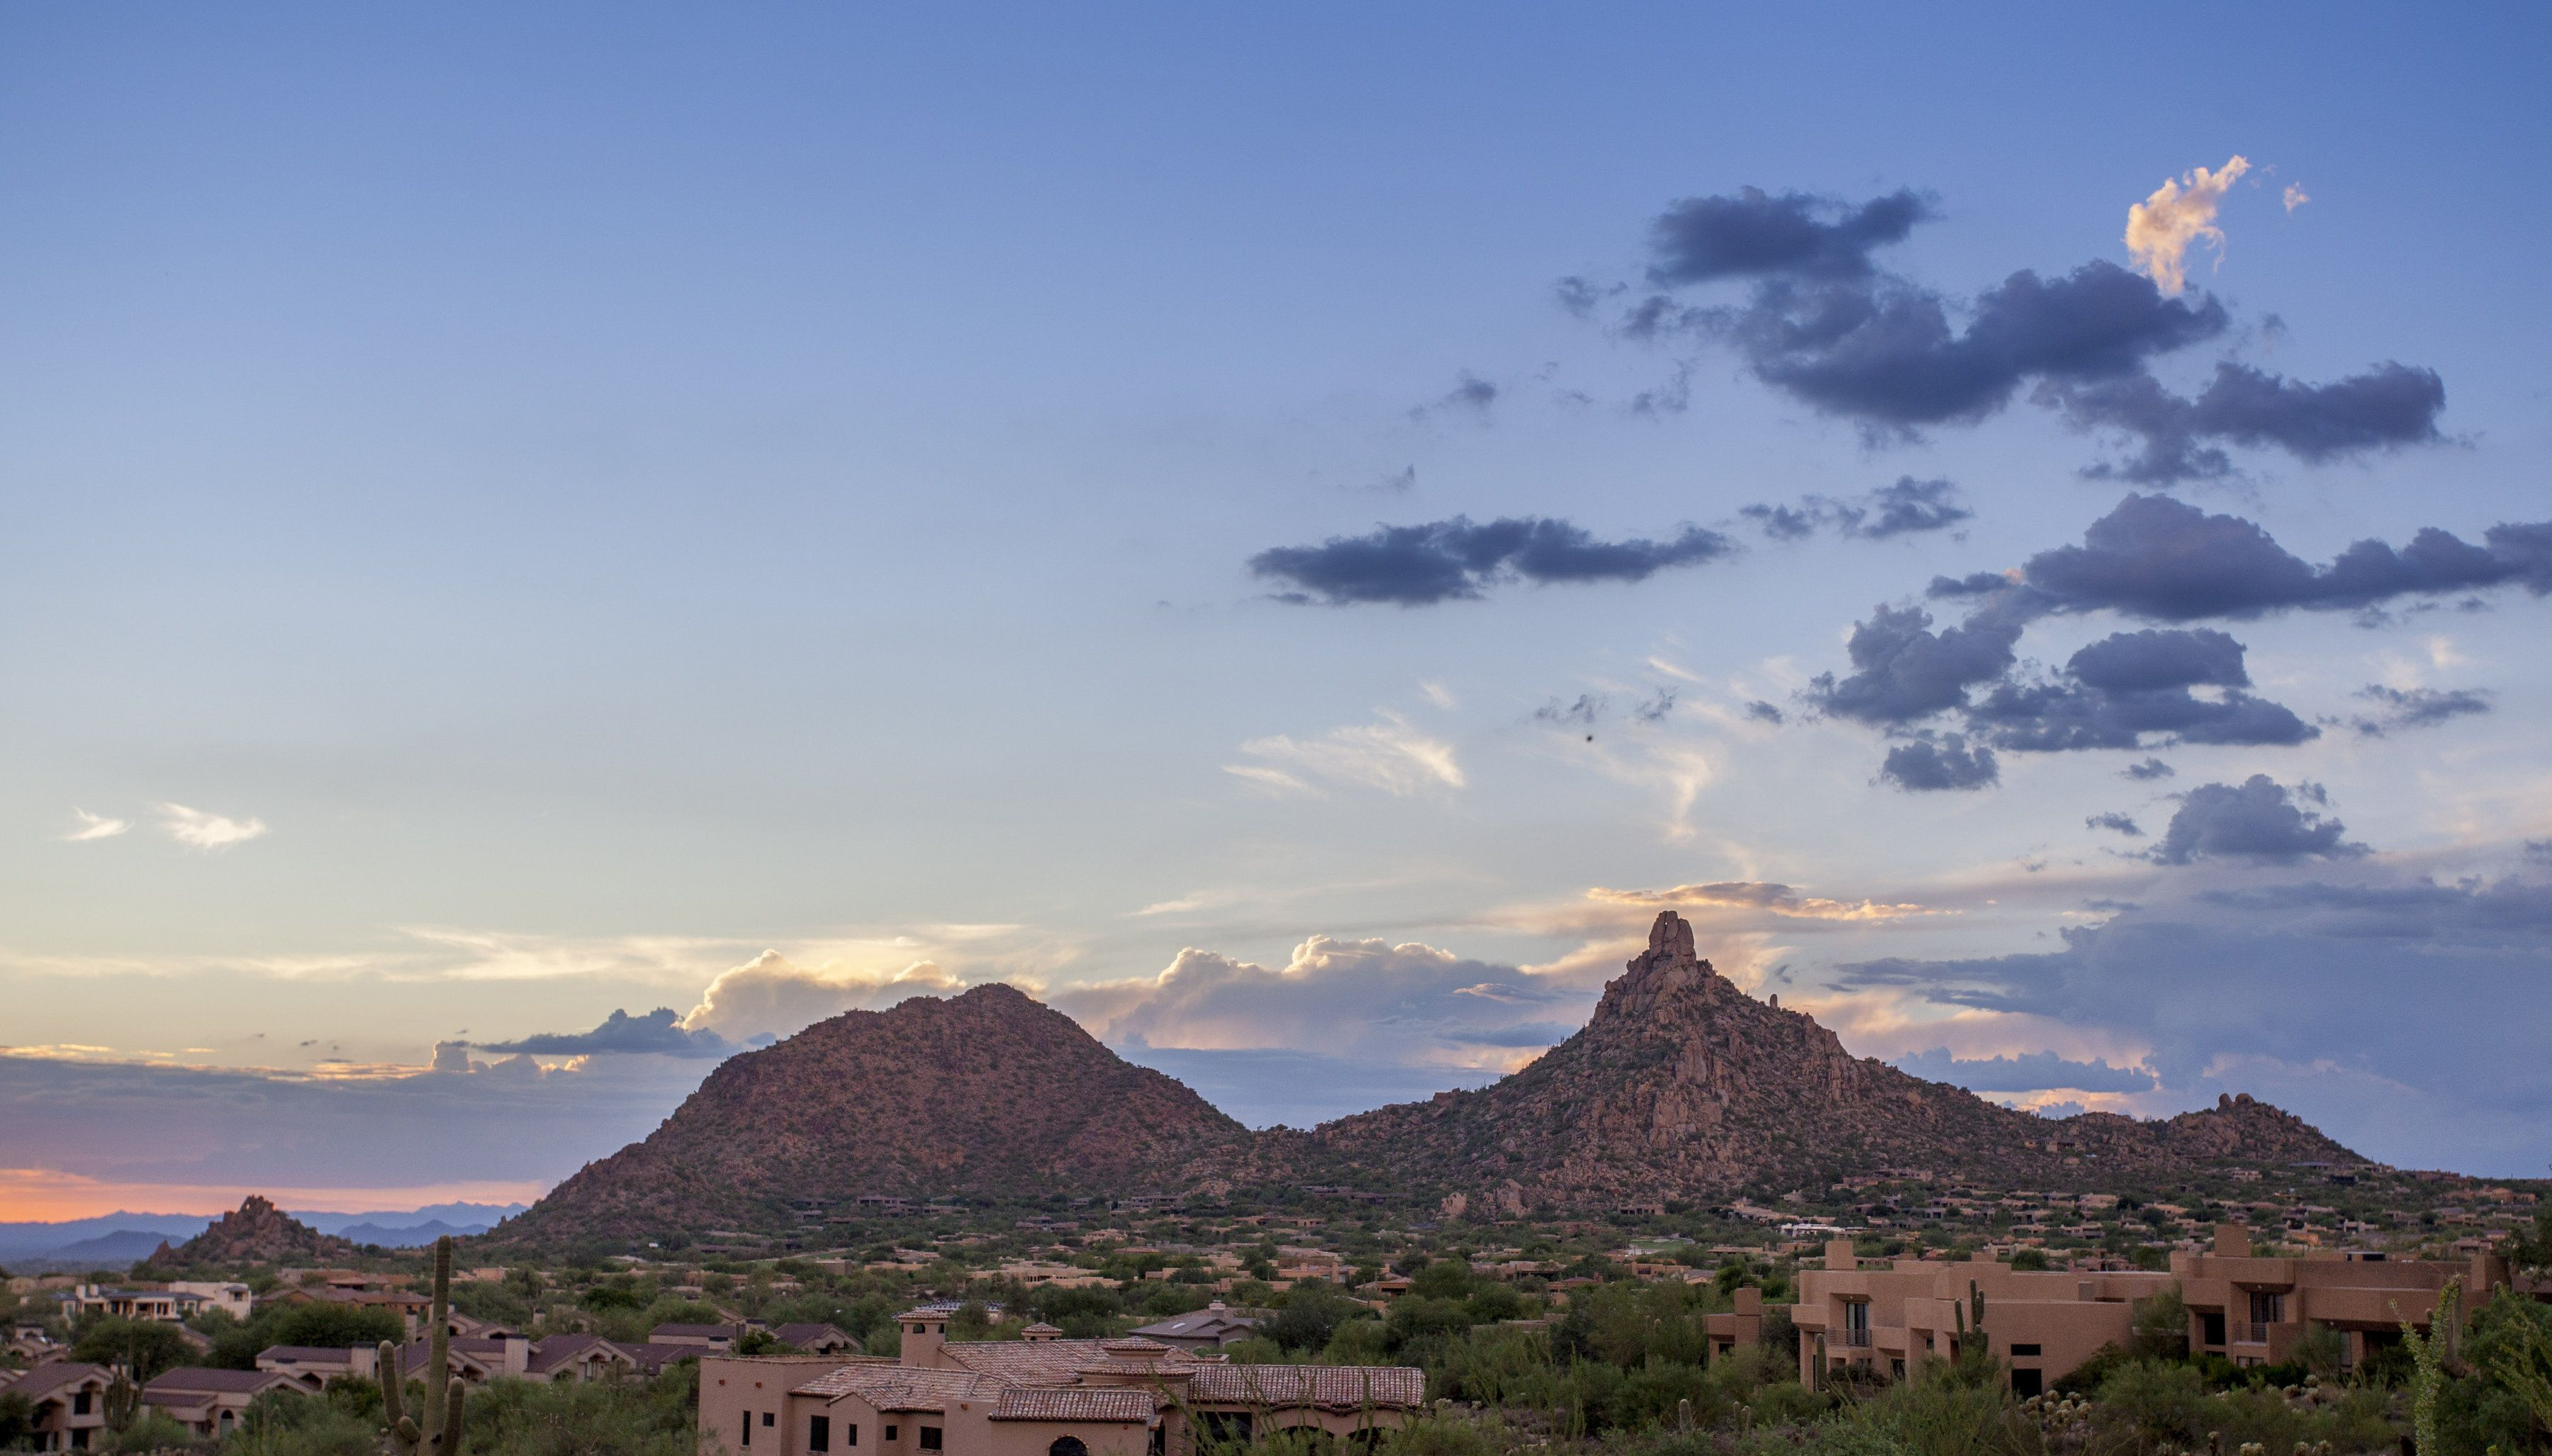 Shadow Peak is located in one of Socttsdale's most coveted gated comunities. Resting high up on Troon mountain, breathtaking Arizona sunsets, endless panoramic Pinnacle Peak, city lights & Sonoran desert views are never hard to find.  #SupremeAuction #LuxuryAuction #Scottsdale #Phoenix #Arizona #ScottsdaleRealEstate #SonoranDesert #ArizonaRealEstate #Troon #TroonVillage #Auction #Artesano #TroonGolf #TroonCountryClub #DesertViews #RealEstate #luxuryrealestate